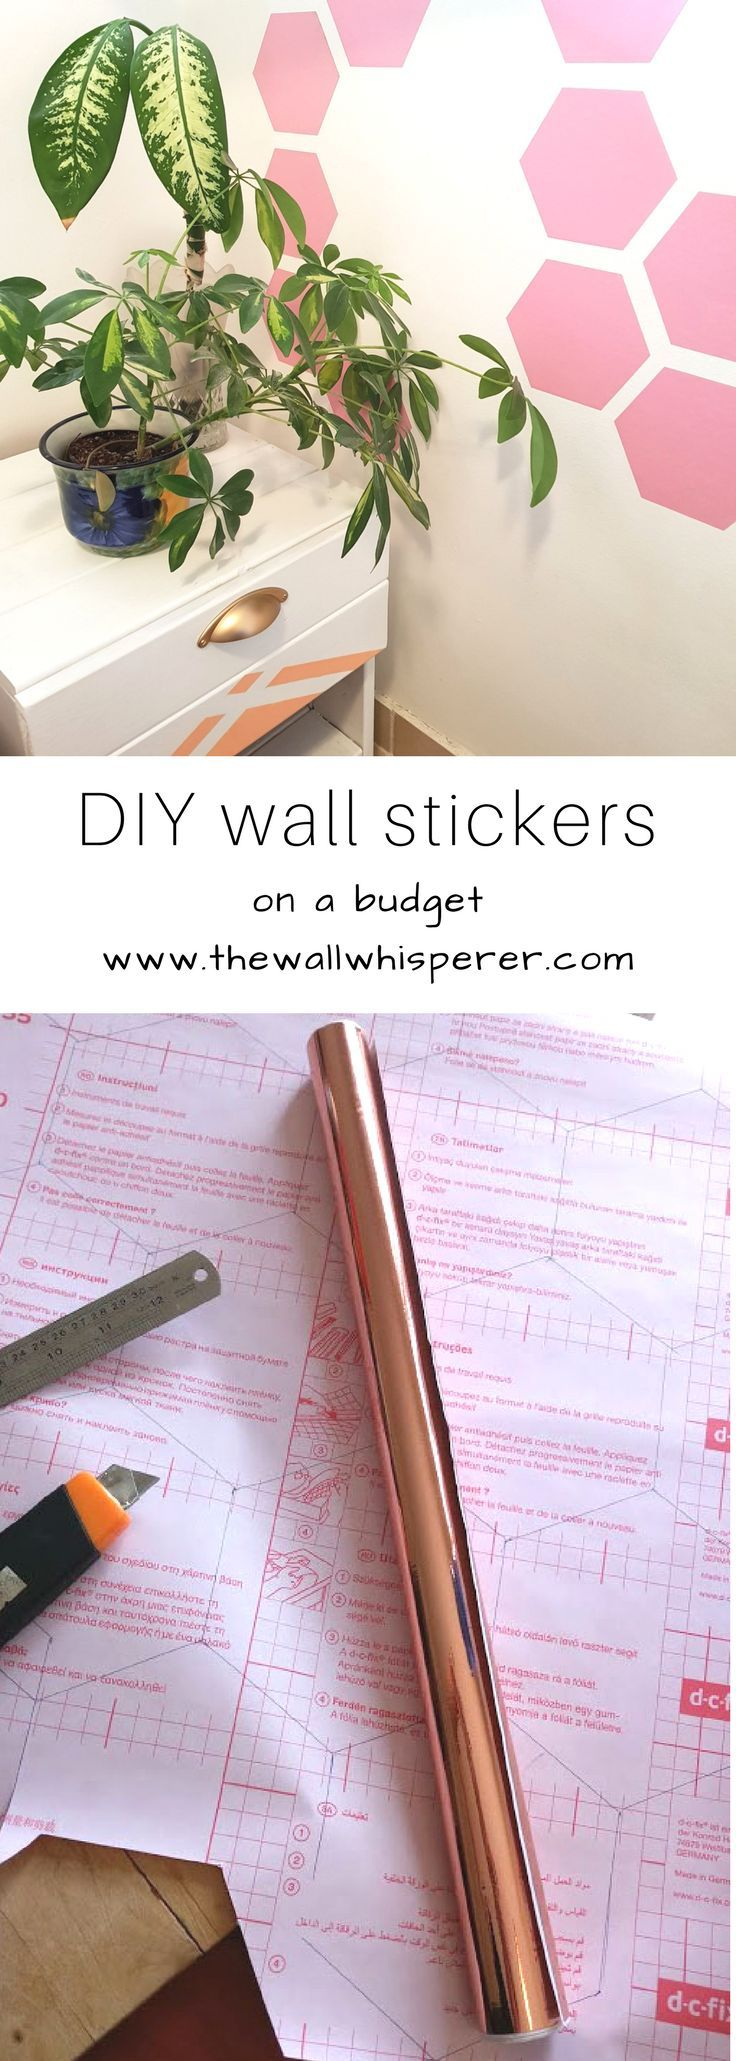 On a budget wall stickers.  DIY home decor tutorial tutorial.  Pink bedroom makeover.